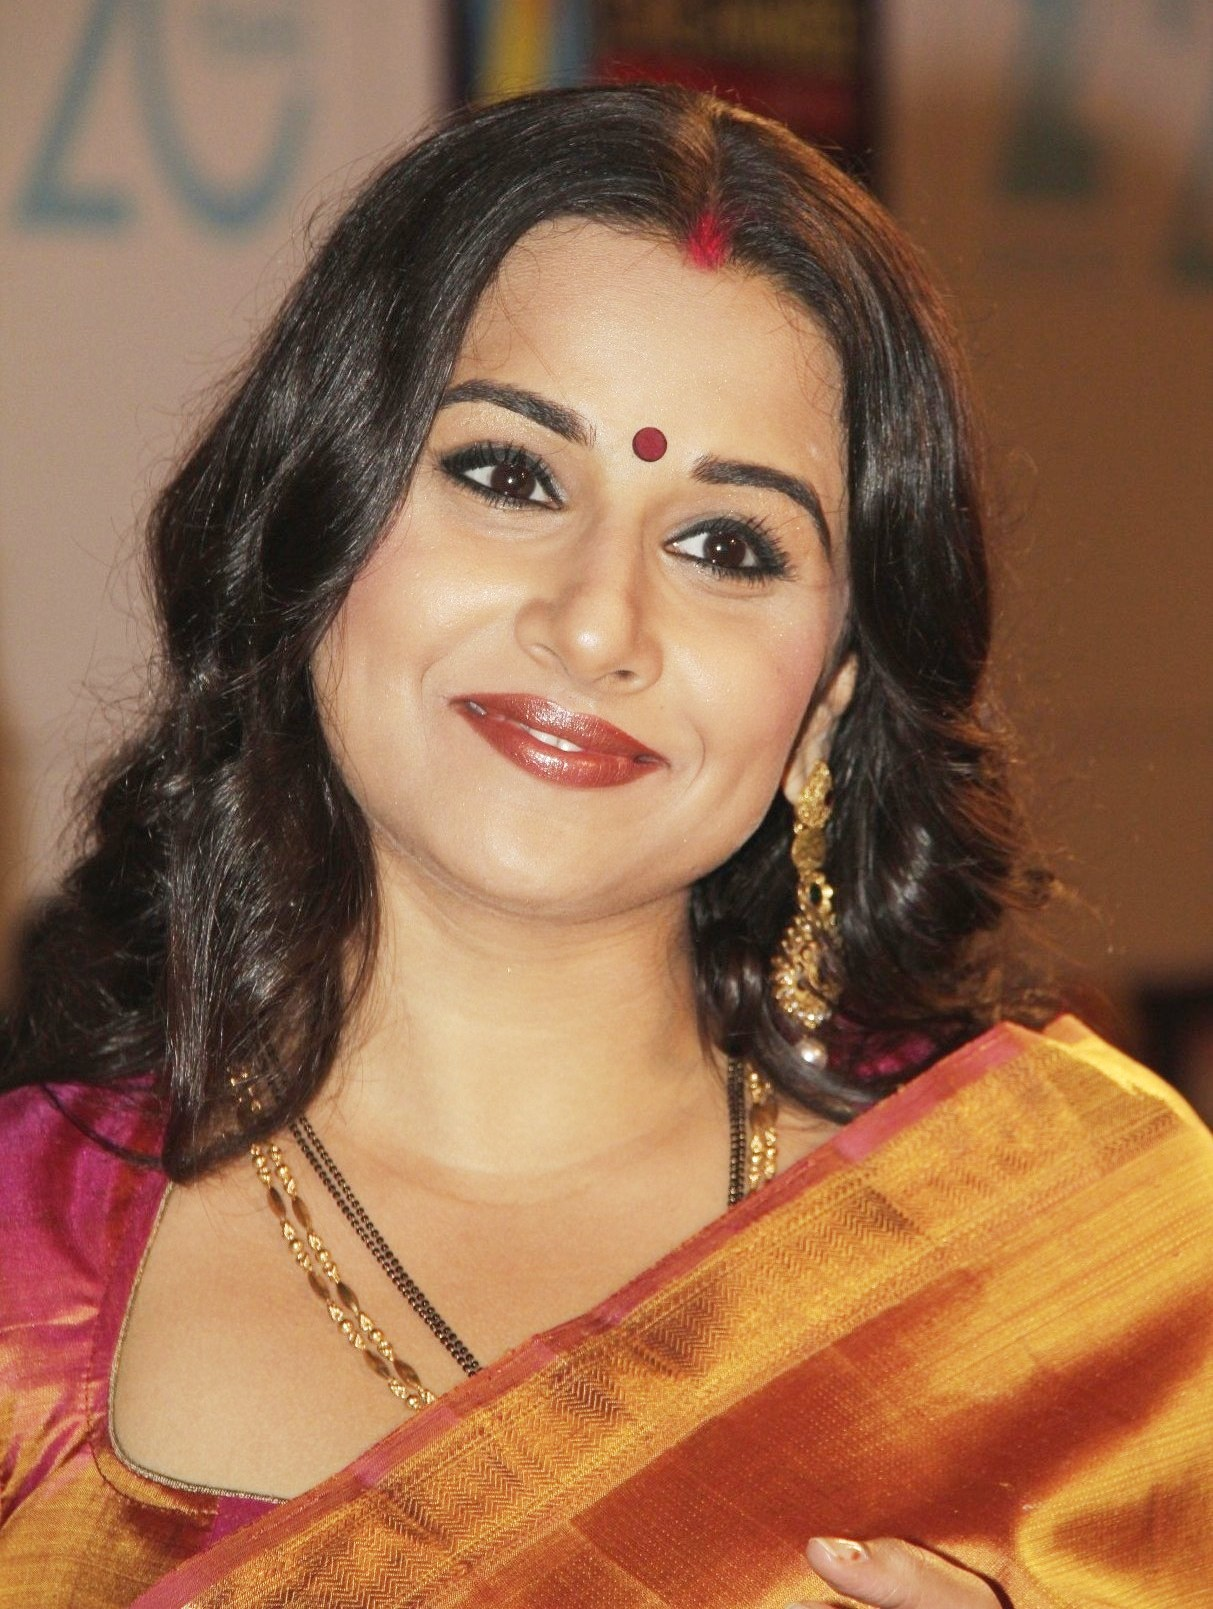 vidya balan latest hd widescreen wallpaper 2012 – itsmyviews